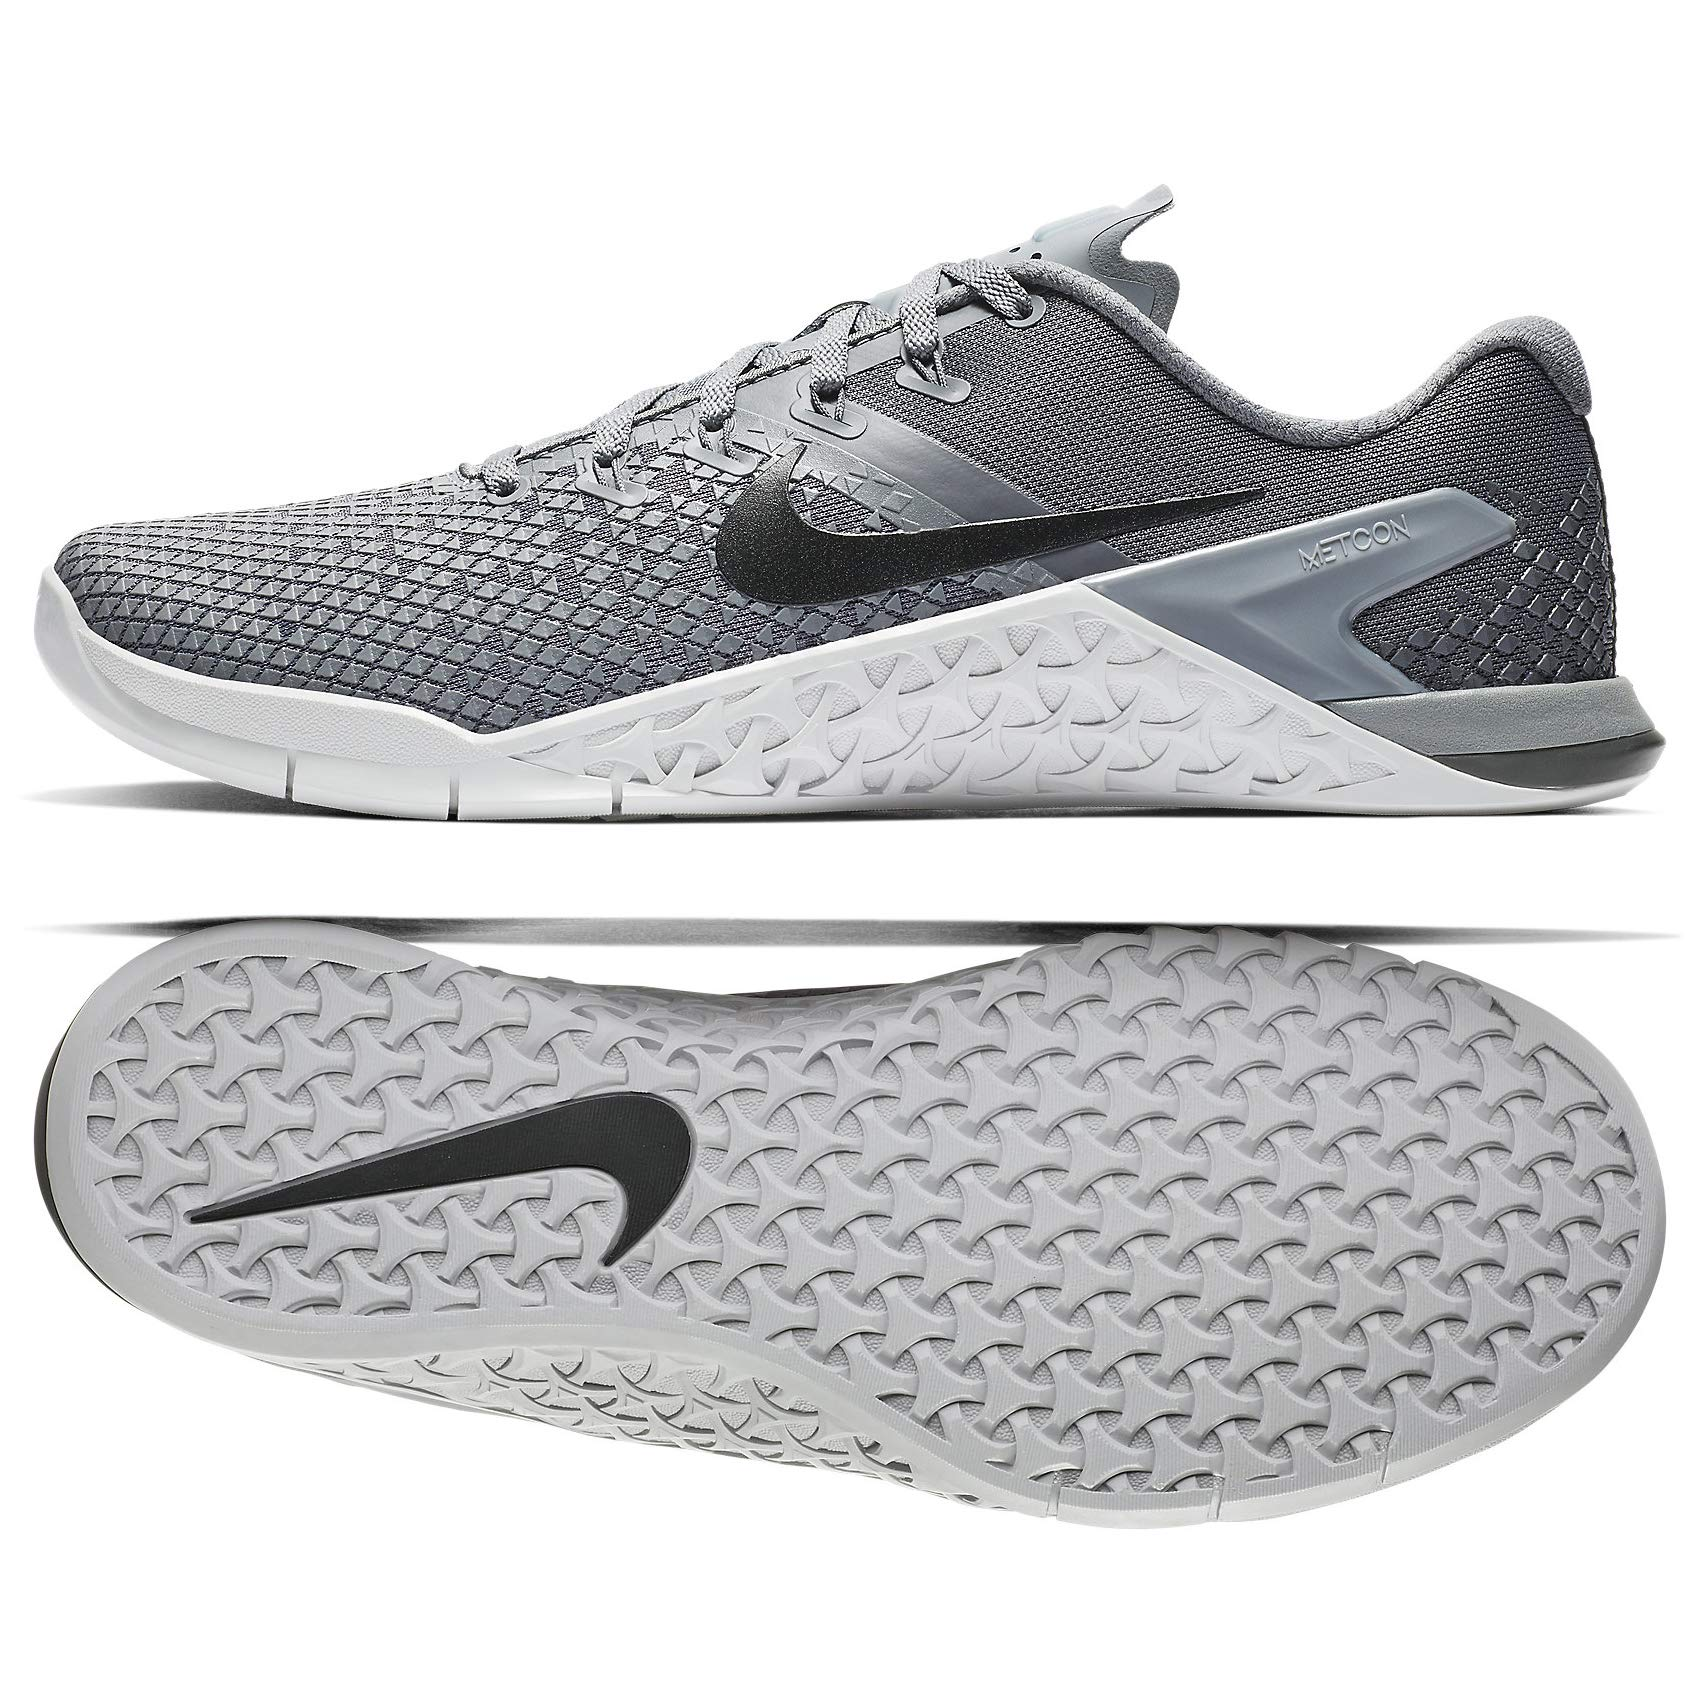 Nike Metcon 4 XD BV1636-164 Cool Grey/Black/Dark Grey Men's Training Shoes (7.5)